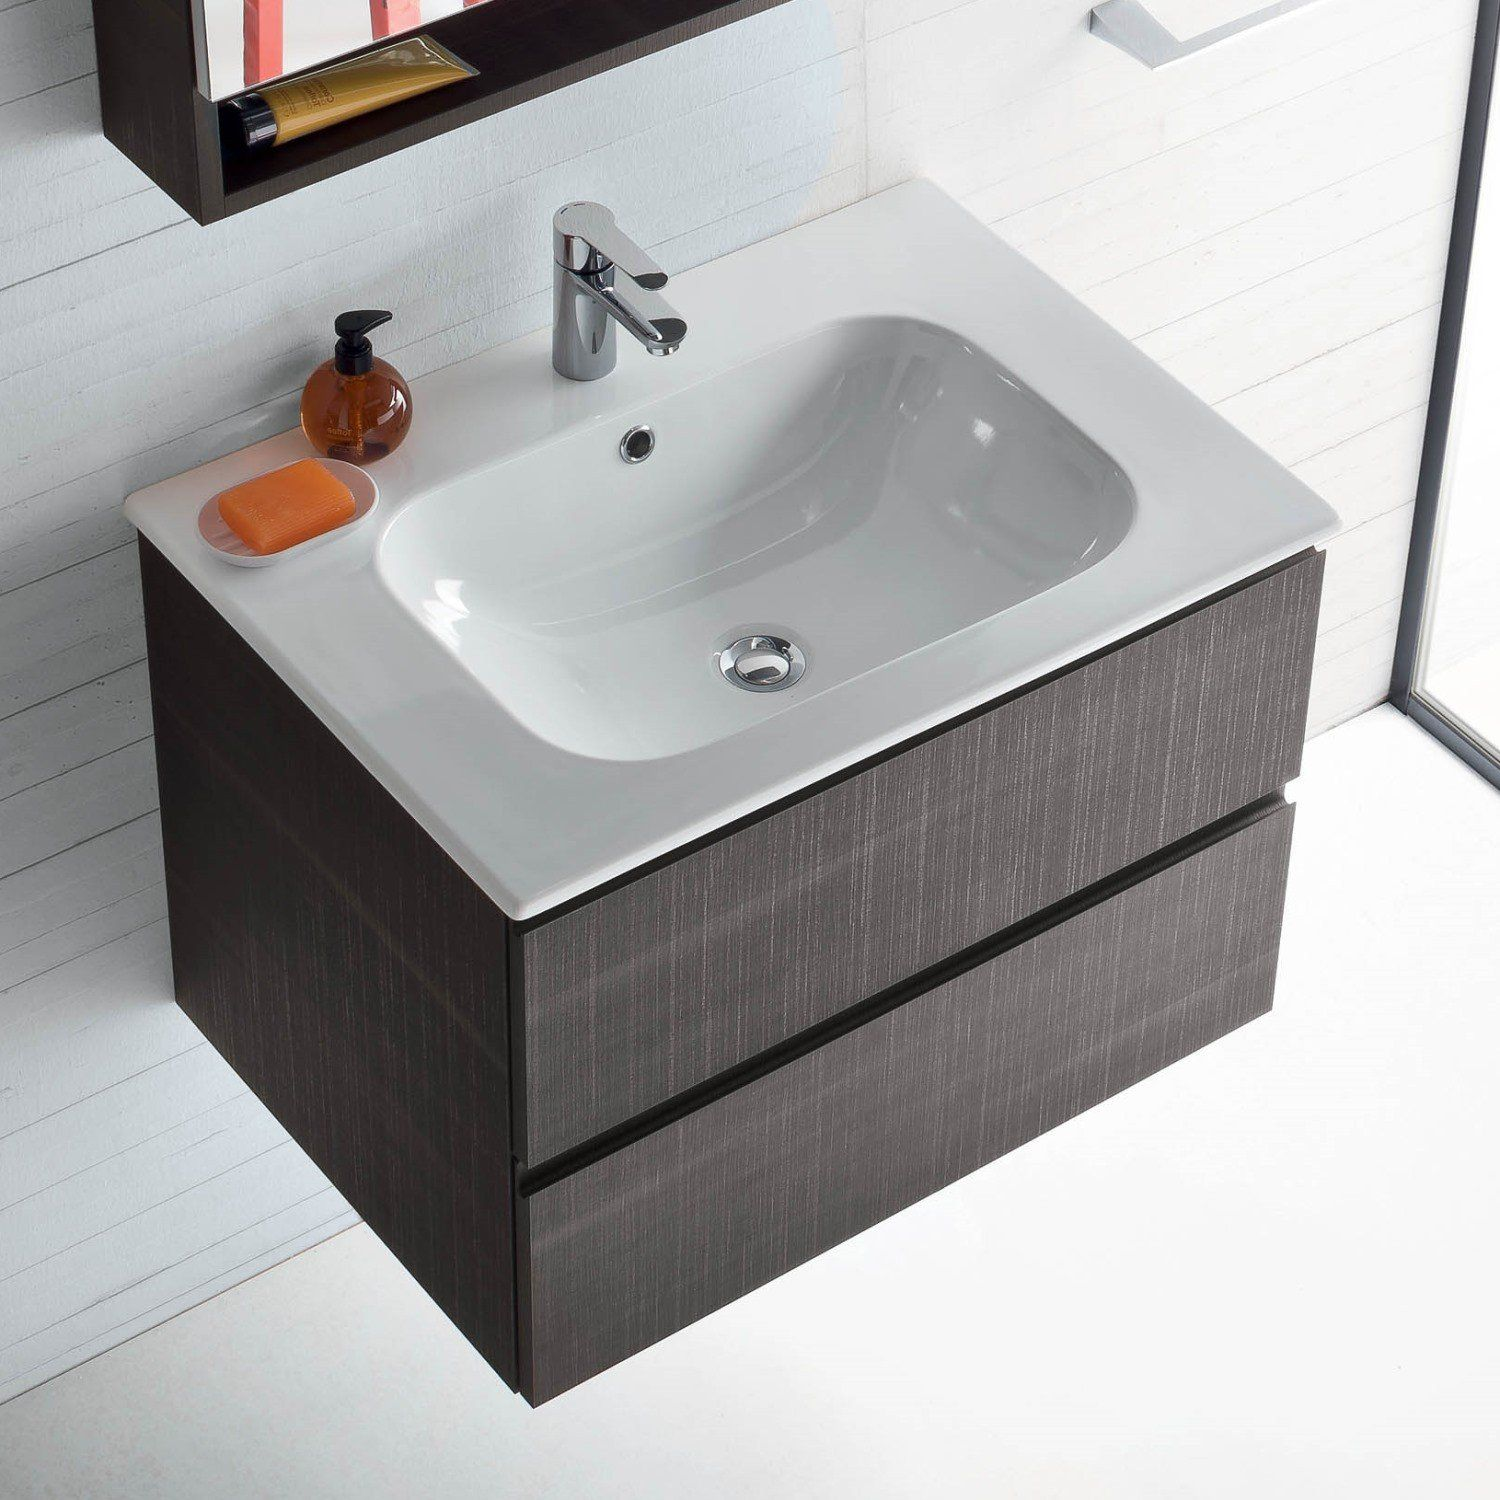 Lavabo Integrato Mobile Bagno Con Lavabo Integrato Nel Piano Atlantic